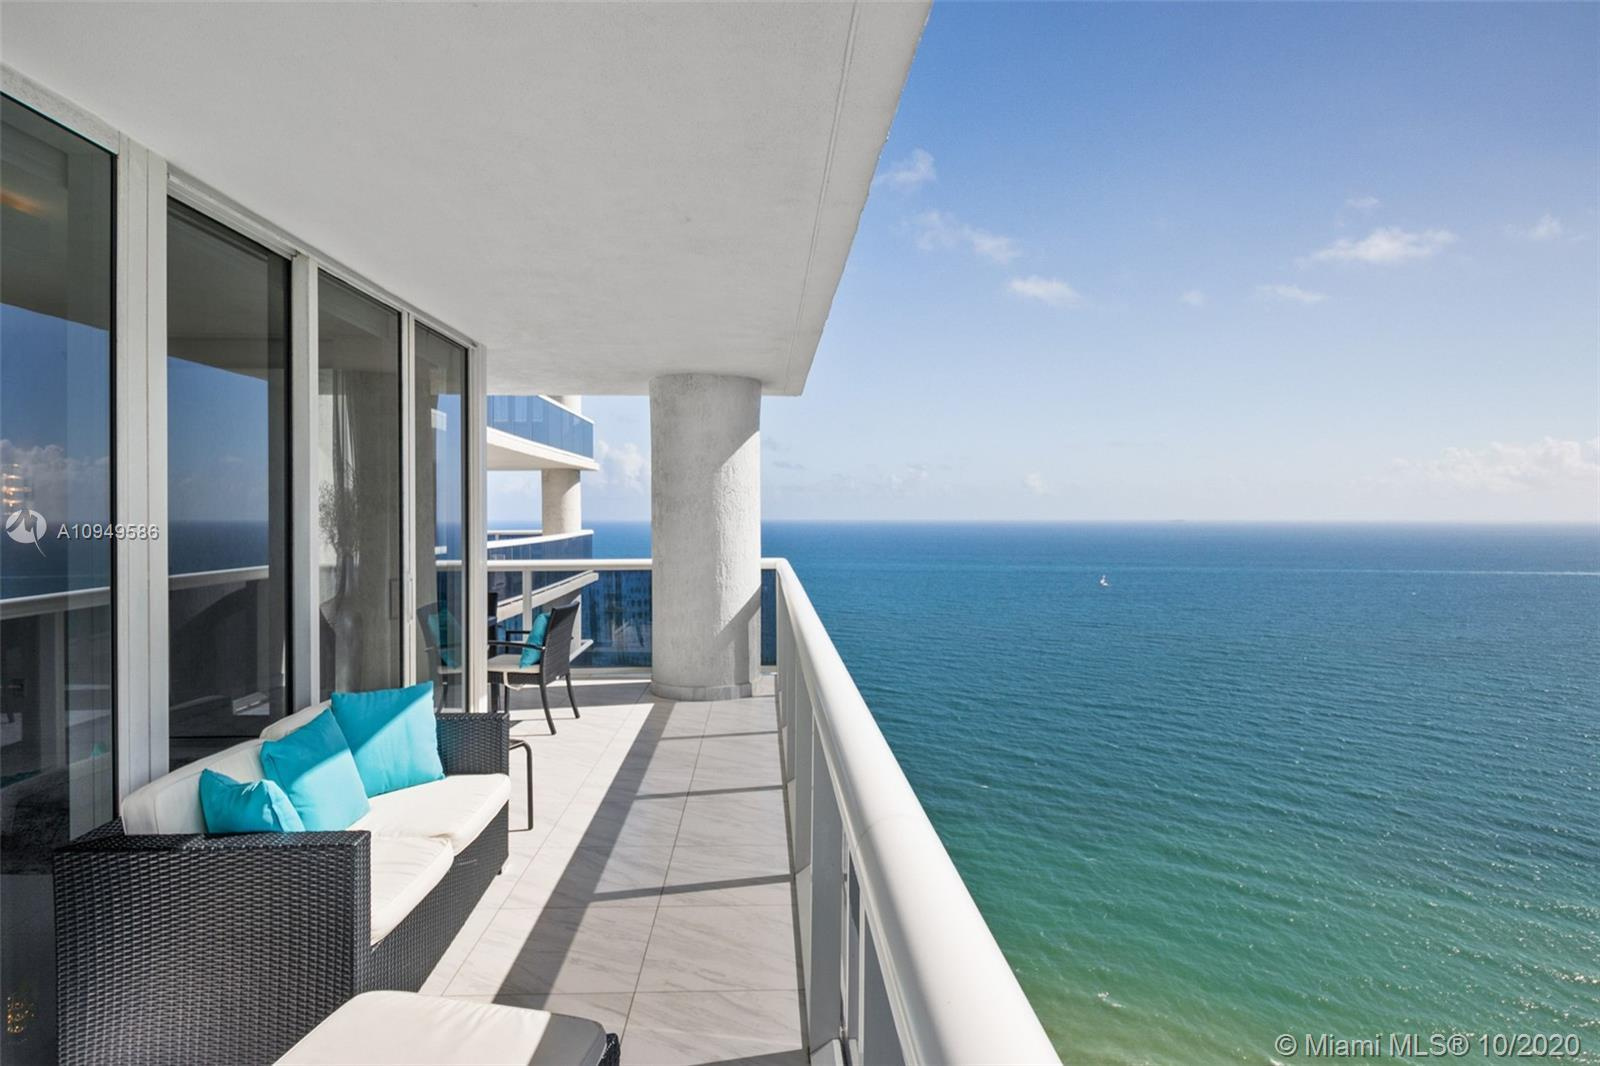 Penthouse corner unit 2Bed+Den with breathtaking views of the beach and the city. White floors throu